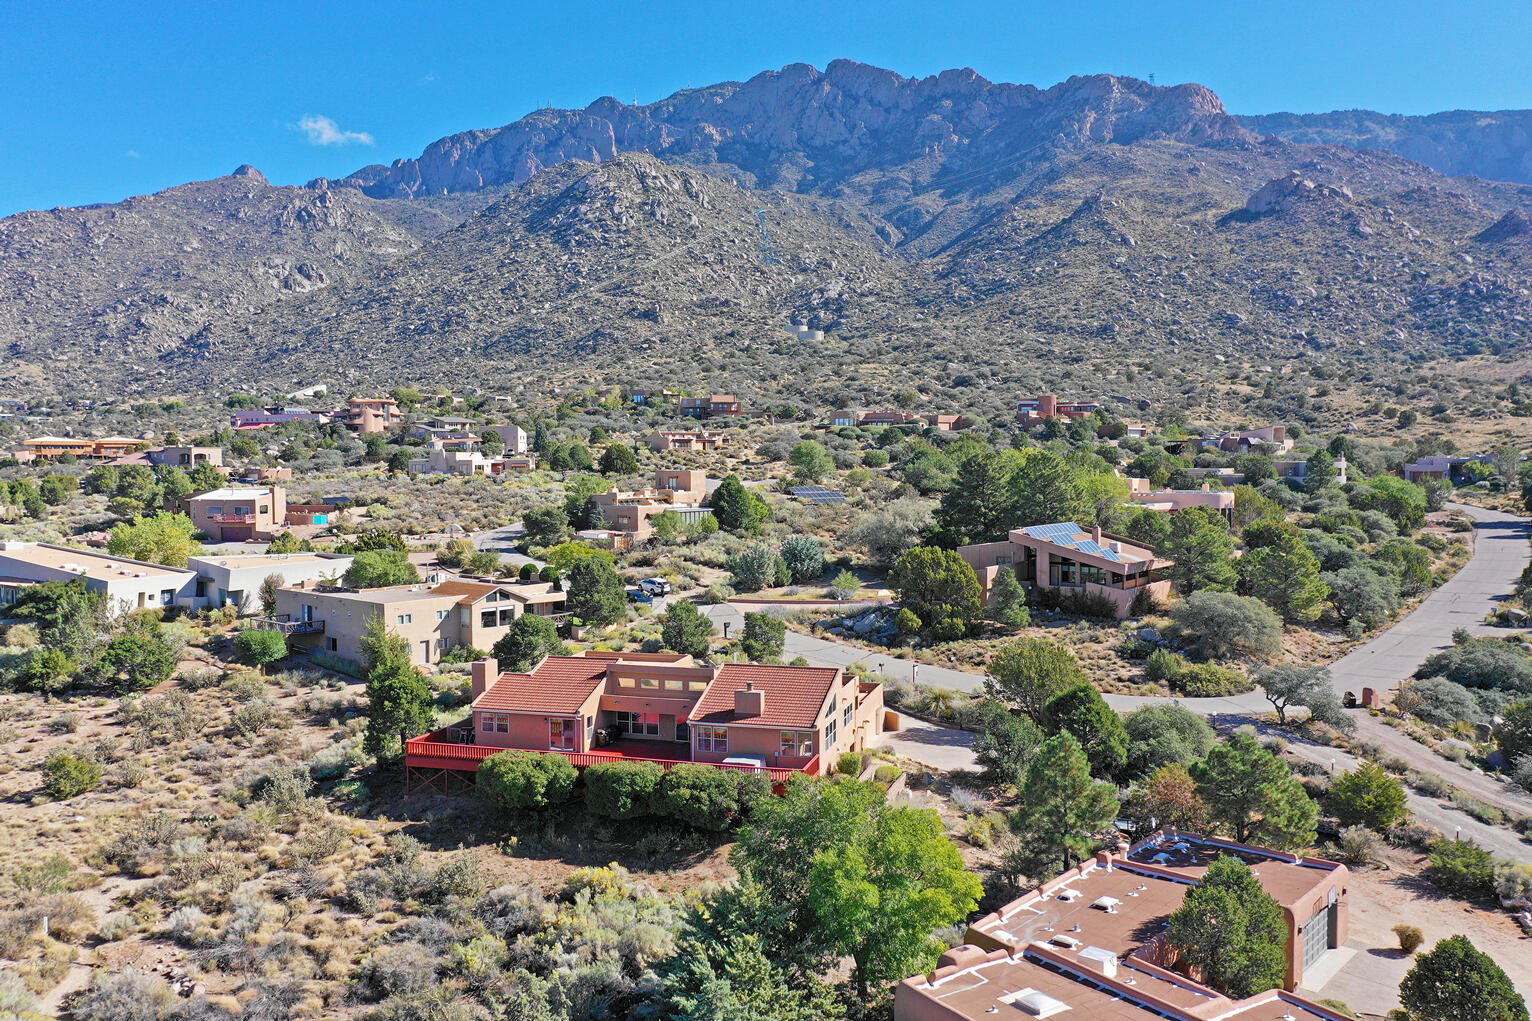 A rare find in an extraordinary setting. Nestled at the base of the Sandia Mountains, this property commands a panorama of views extending as far as the eye can see over and around Albuquerque. You can sit on a quiet, enclosed patio and watch the Sandia's claim their watermelon nickname in the evenings, then watch the sunset from a broad open deck as the valley slowly lights up the night sky. The interior is bright and open with large windows and a clearstory one would hope to find in a building with such amazing views. There are 4 bedrooms, 3 bathrooms, an updated kitchen, a lower-level recreation room and an oversized 2 car garage. Come and see this property, sit quietly on the east facing patio, watch our famous tram makes its lofty trek to the top of the mountain and listen. Priceless!